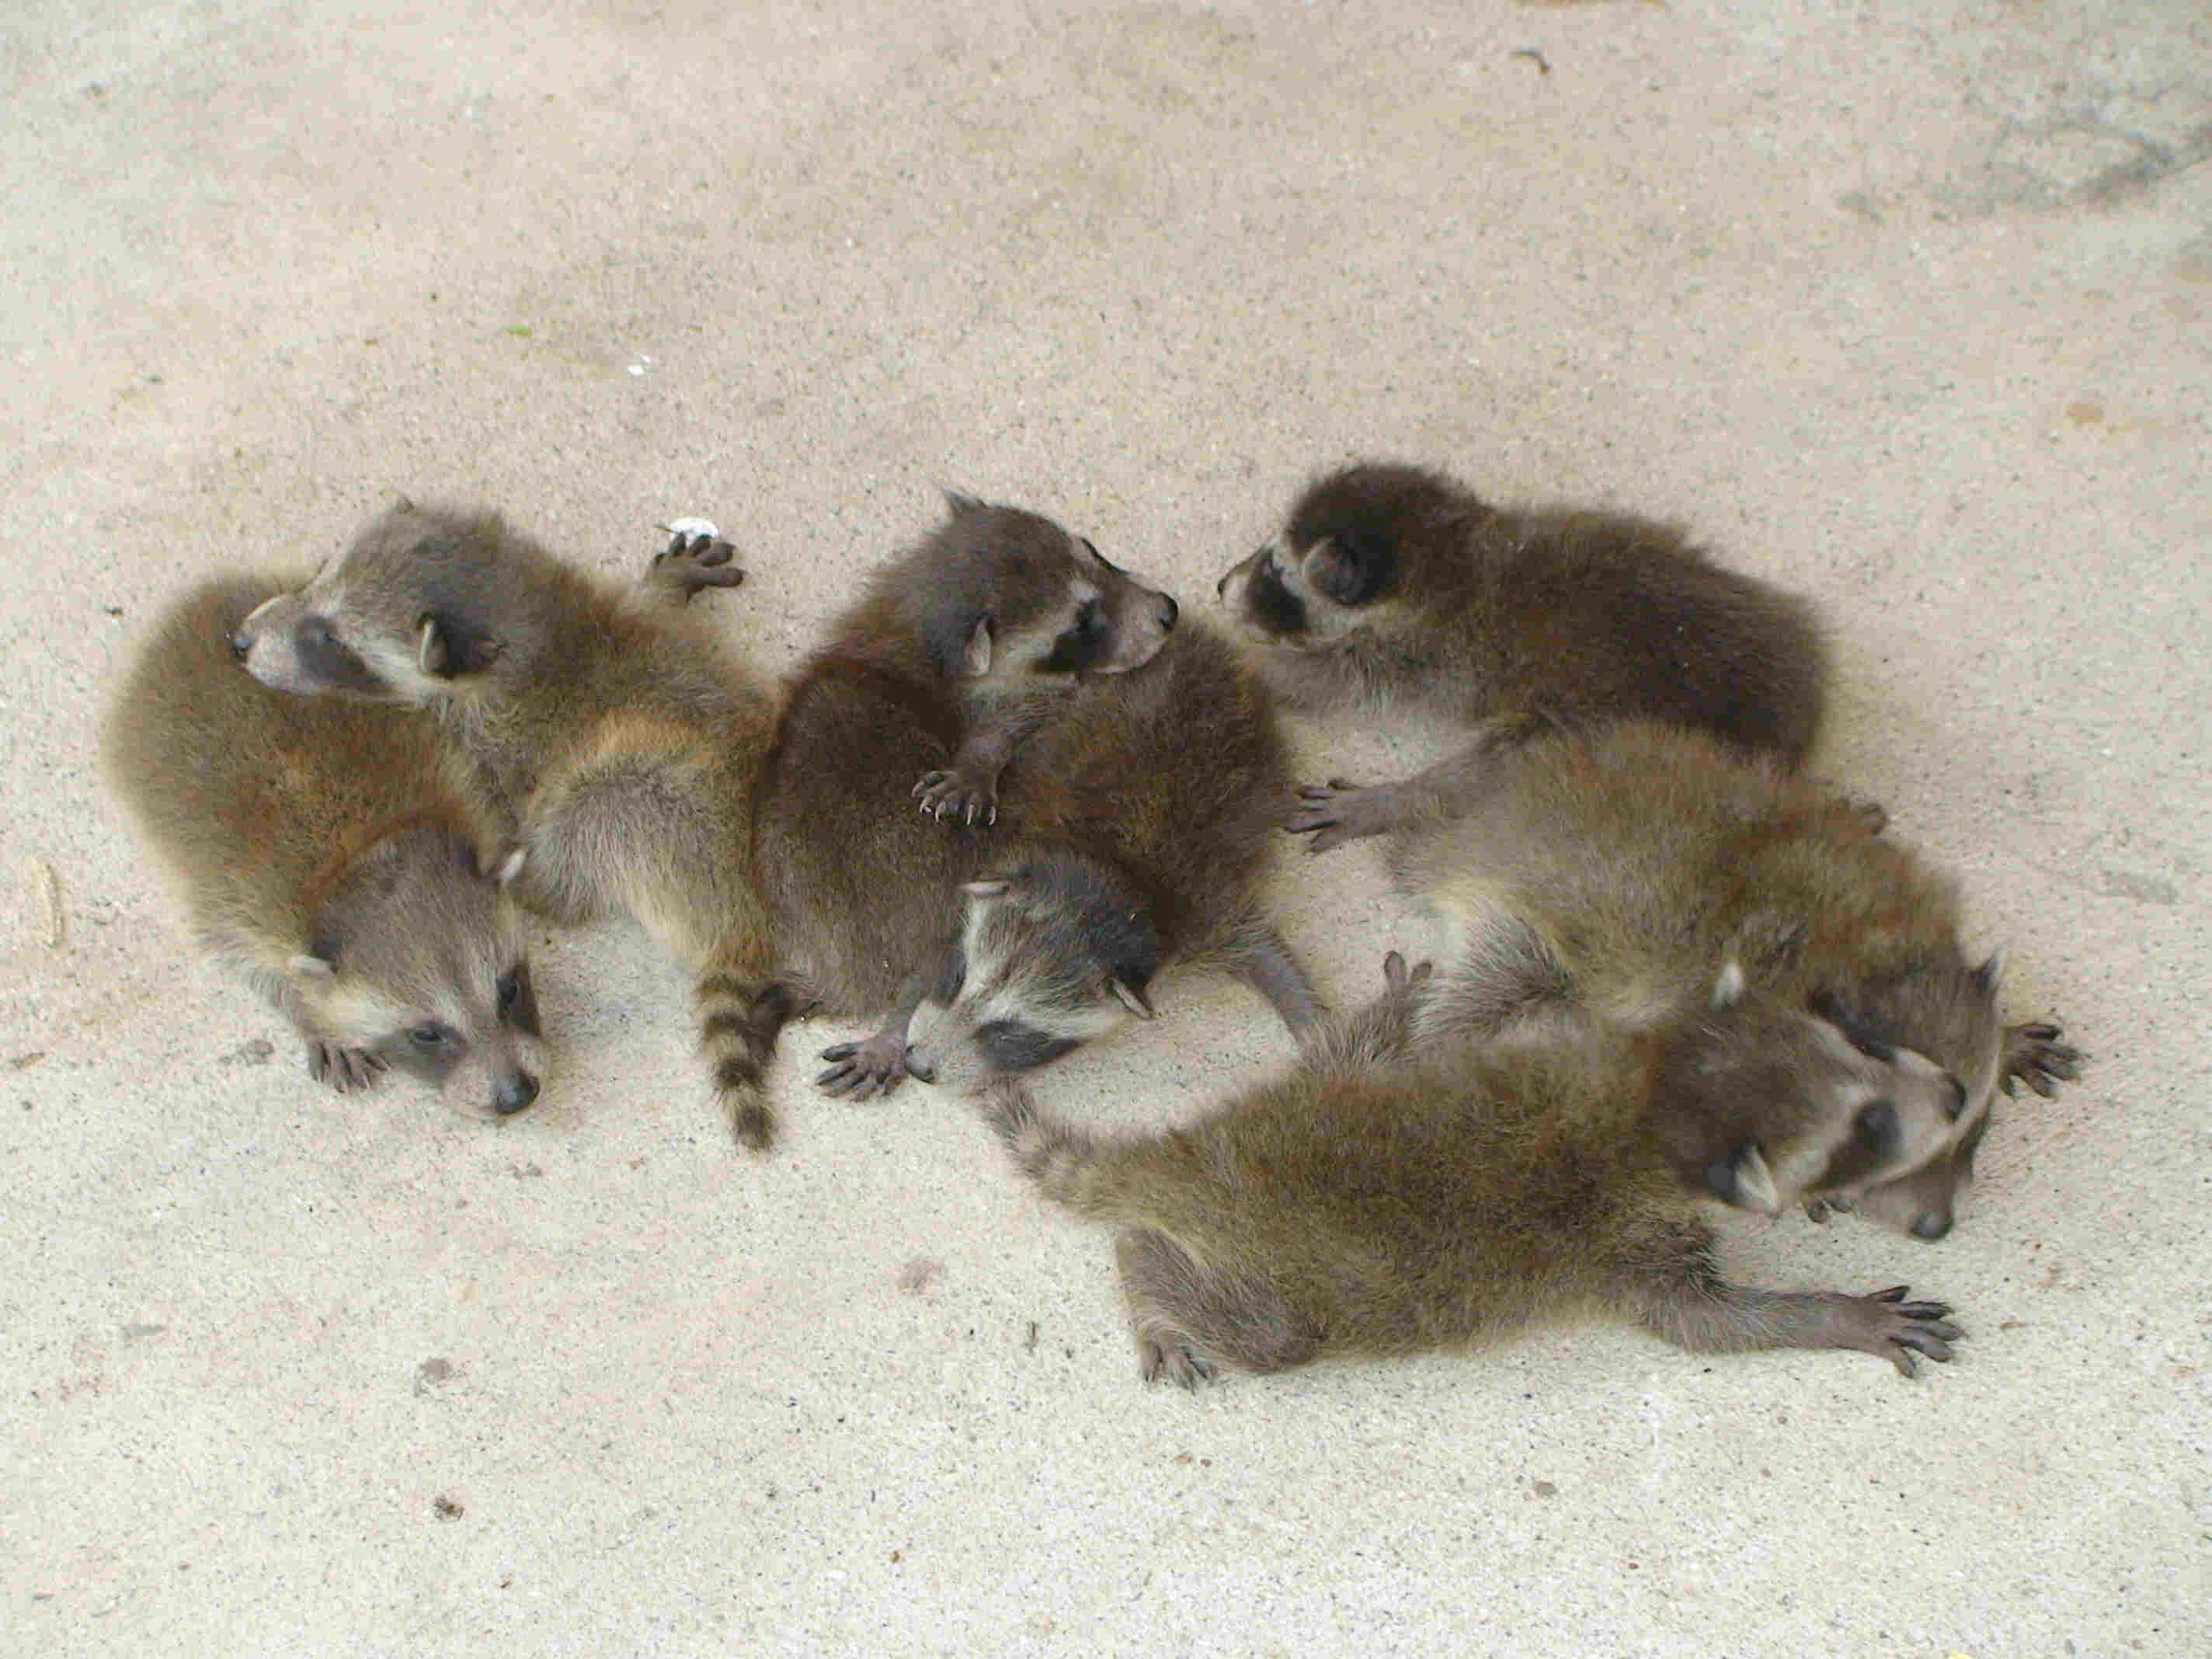 Several baby raccoons on the ground.